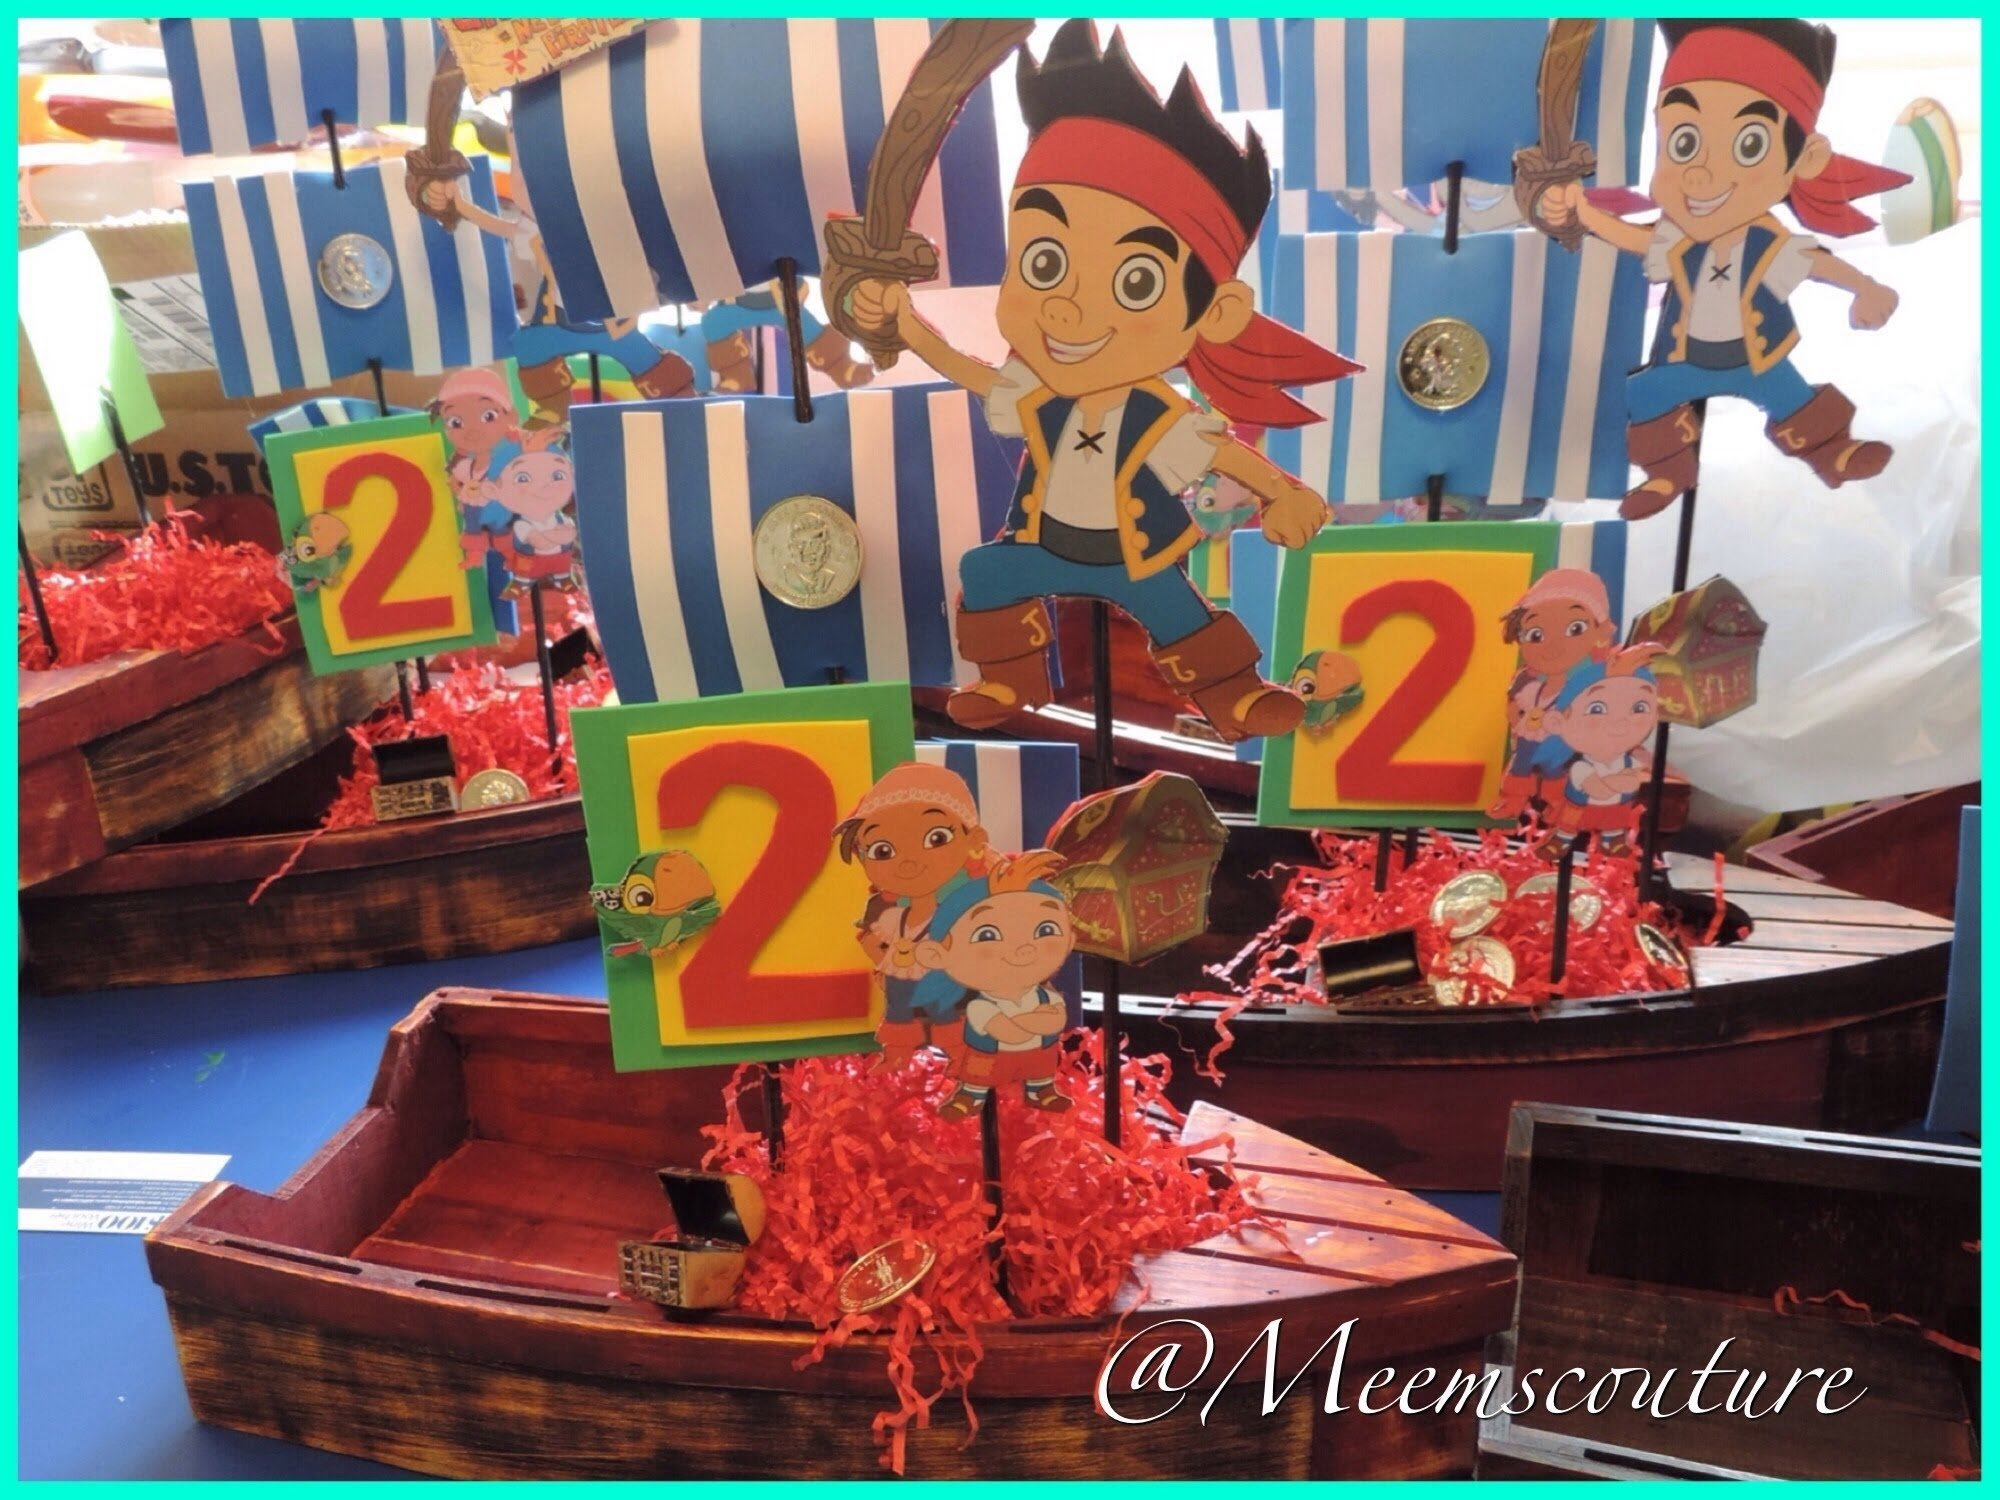 10 Perfect Jake The Pirate Party Ideas diy jake and the neverland pirates party center pieces youtube 2 2021